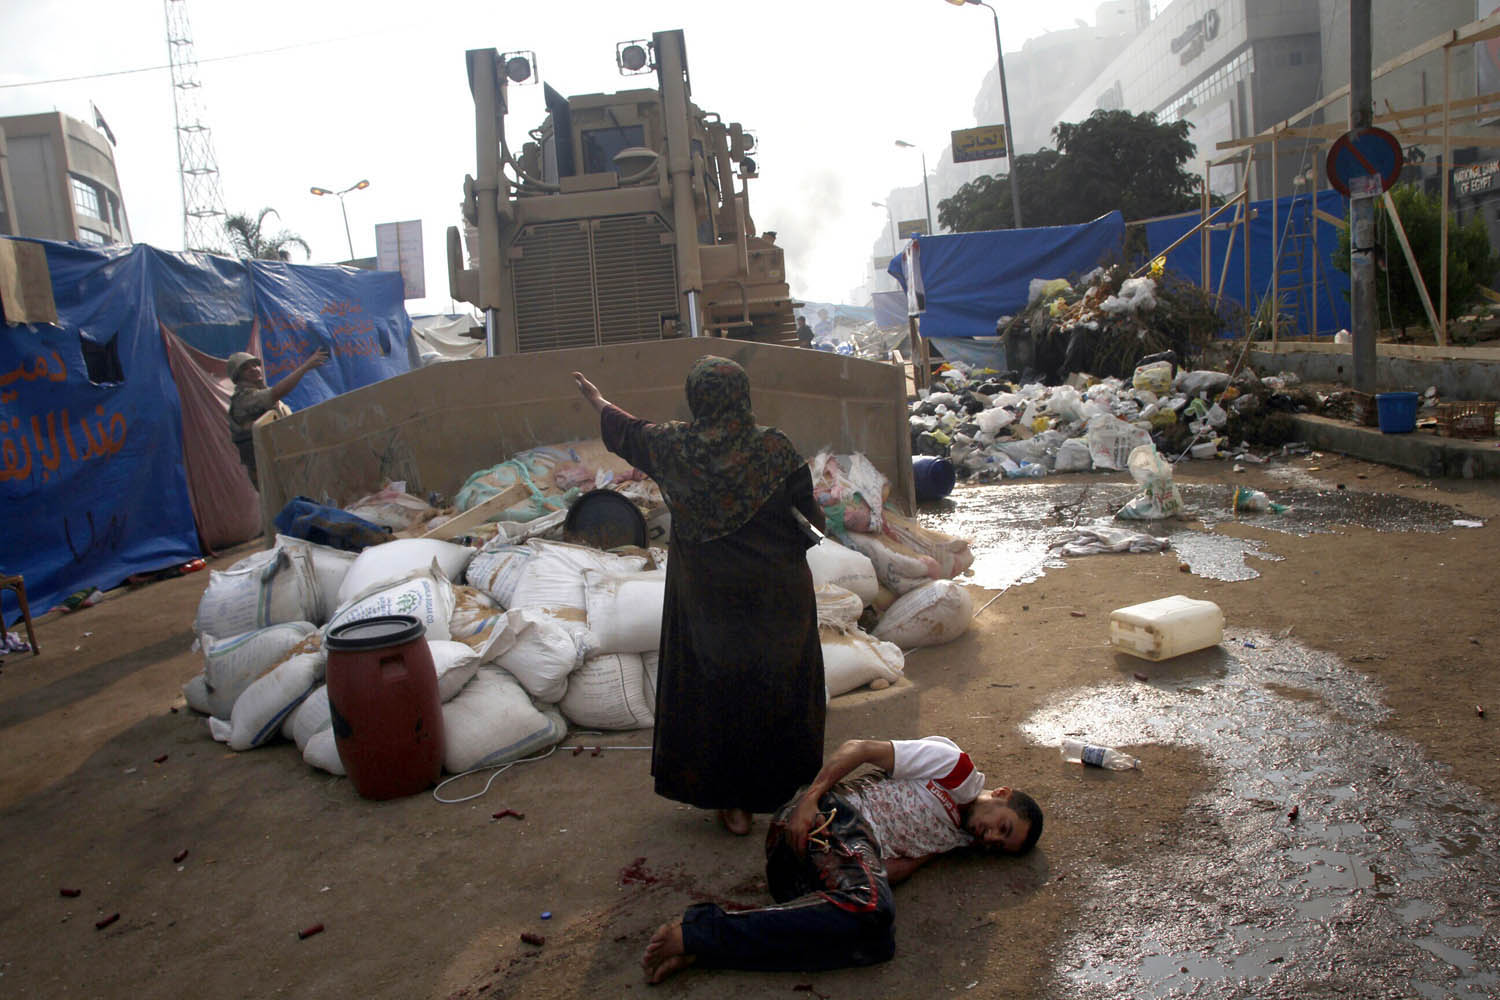 Aug. 14, 2013. An Egyptian woman tries to stop a military bulldozer from hurting a wounded youth during clashes that broke out as Egyptian security forces moved in to disperse supporters of Egypt's deposed president Mohamed Morsi in a huge protest camp near Rabaa al-Adawiya mosque in eastern Cairo.